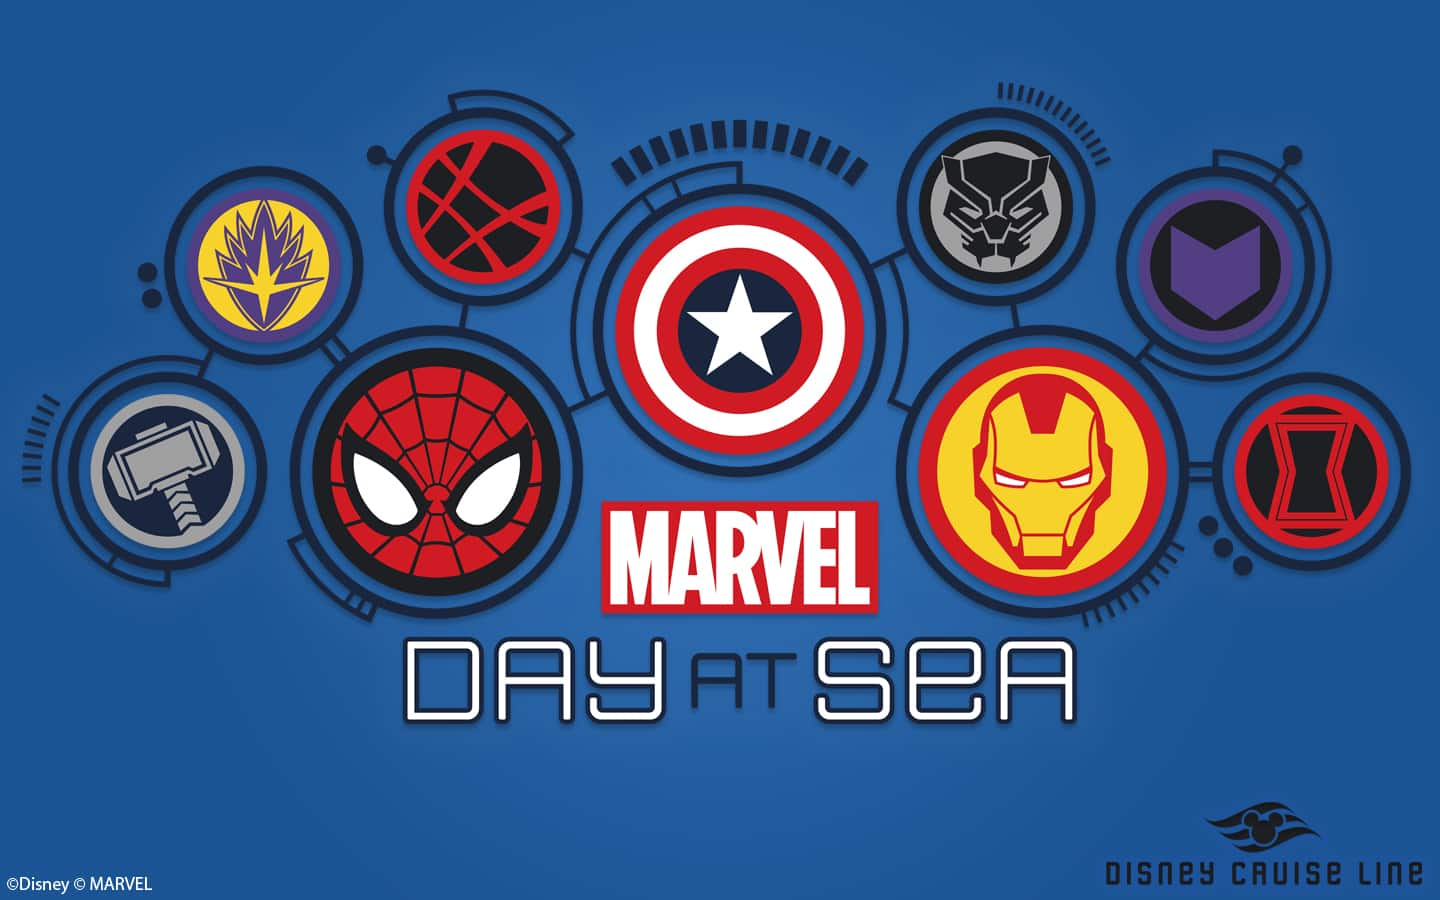 Marvel Day At Sea Wallpapers Desktop Disney Parks Blog